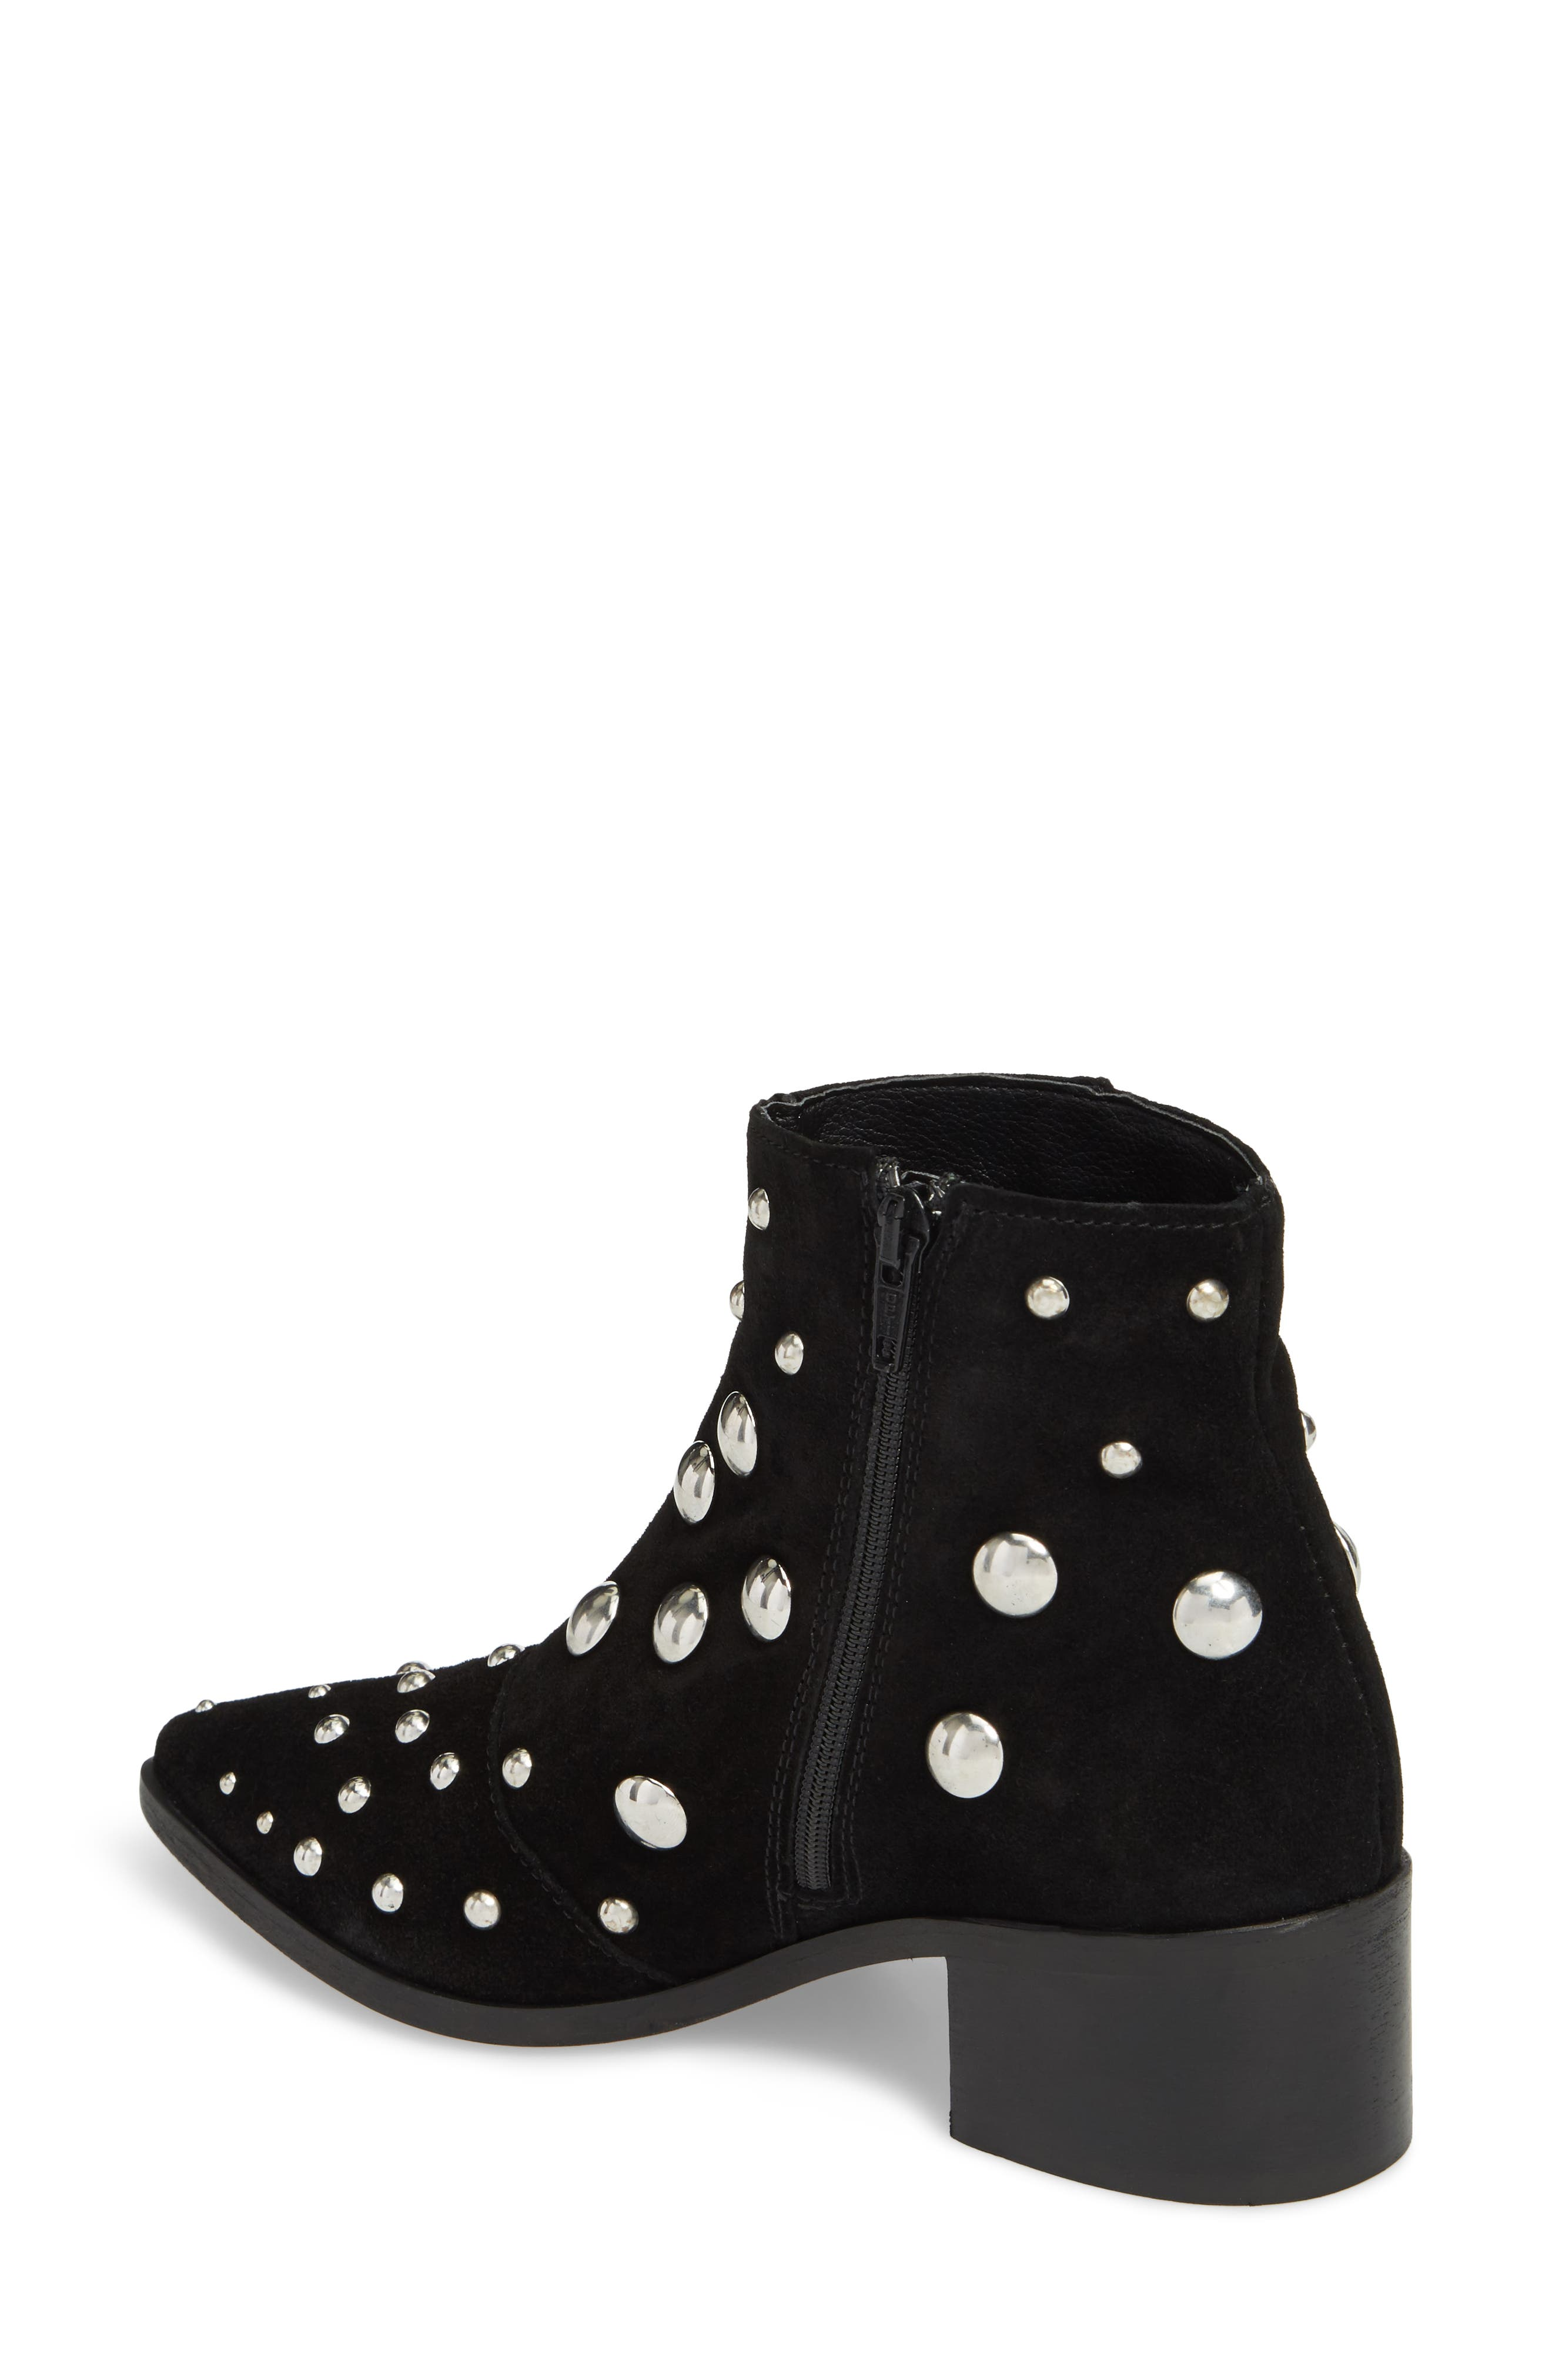 Barston Studded Boot,                             Alternate thumbnail 2, color,                             001